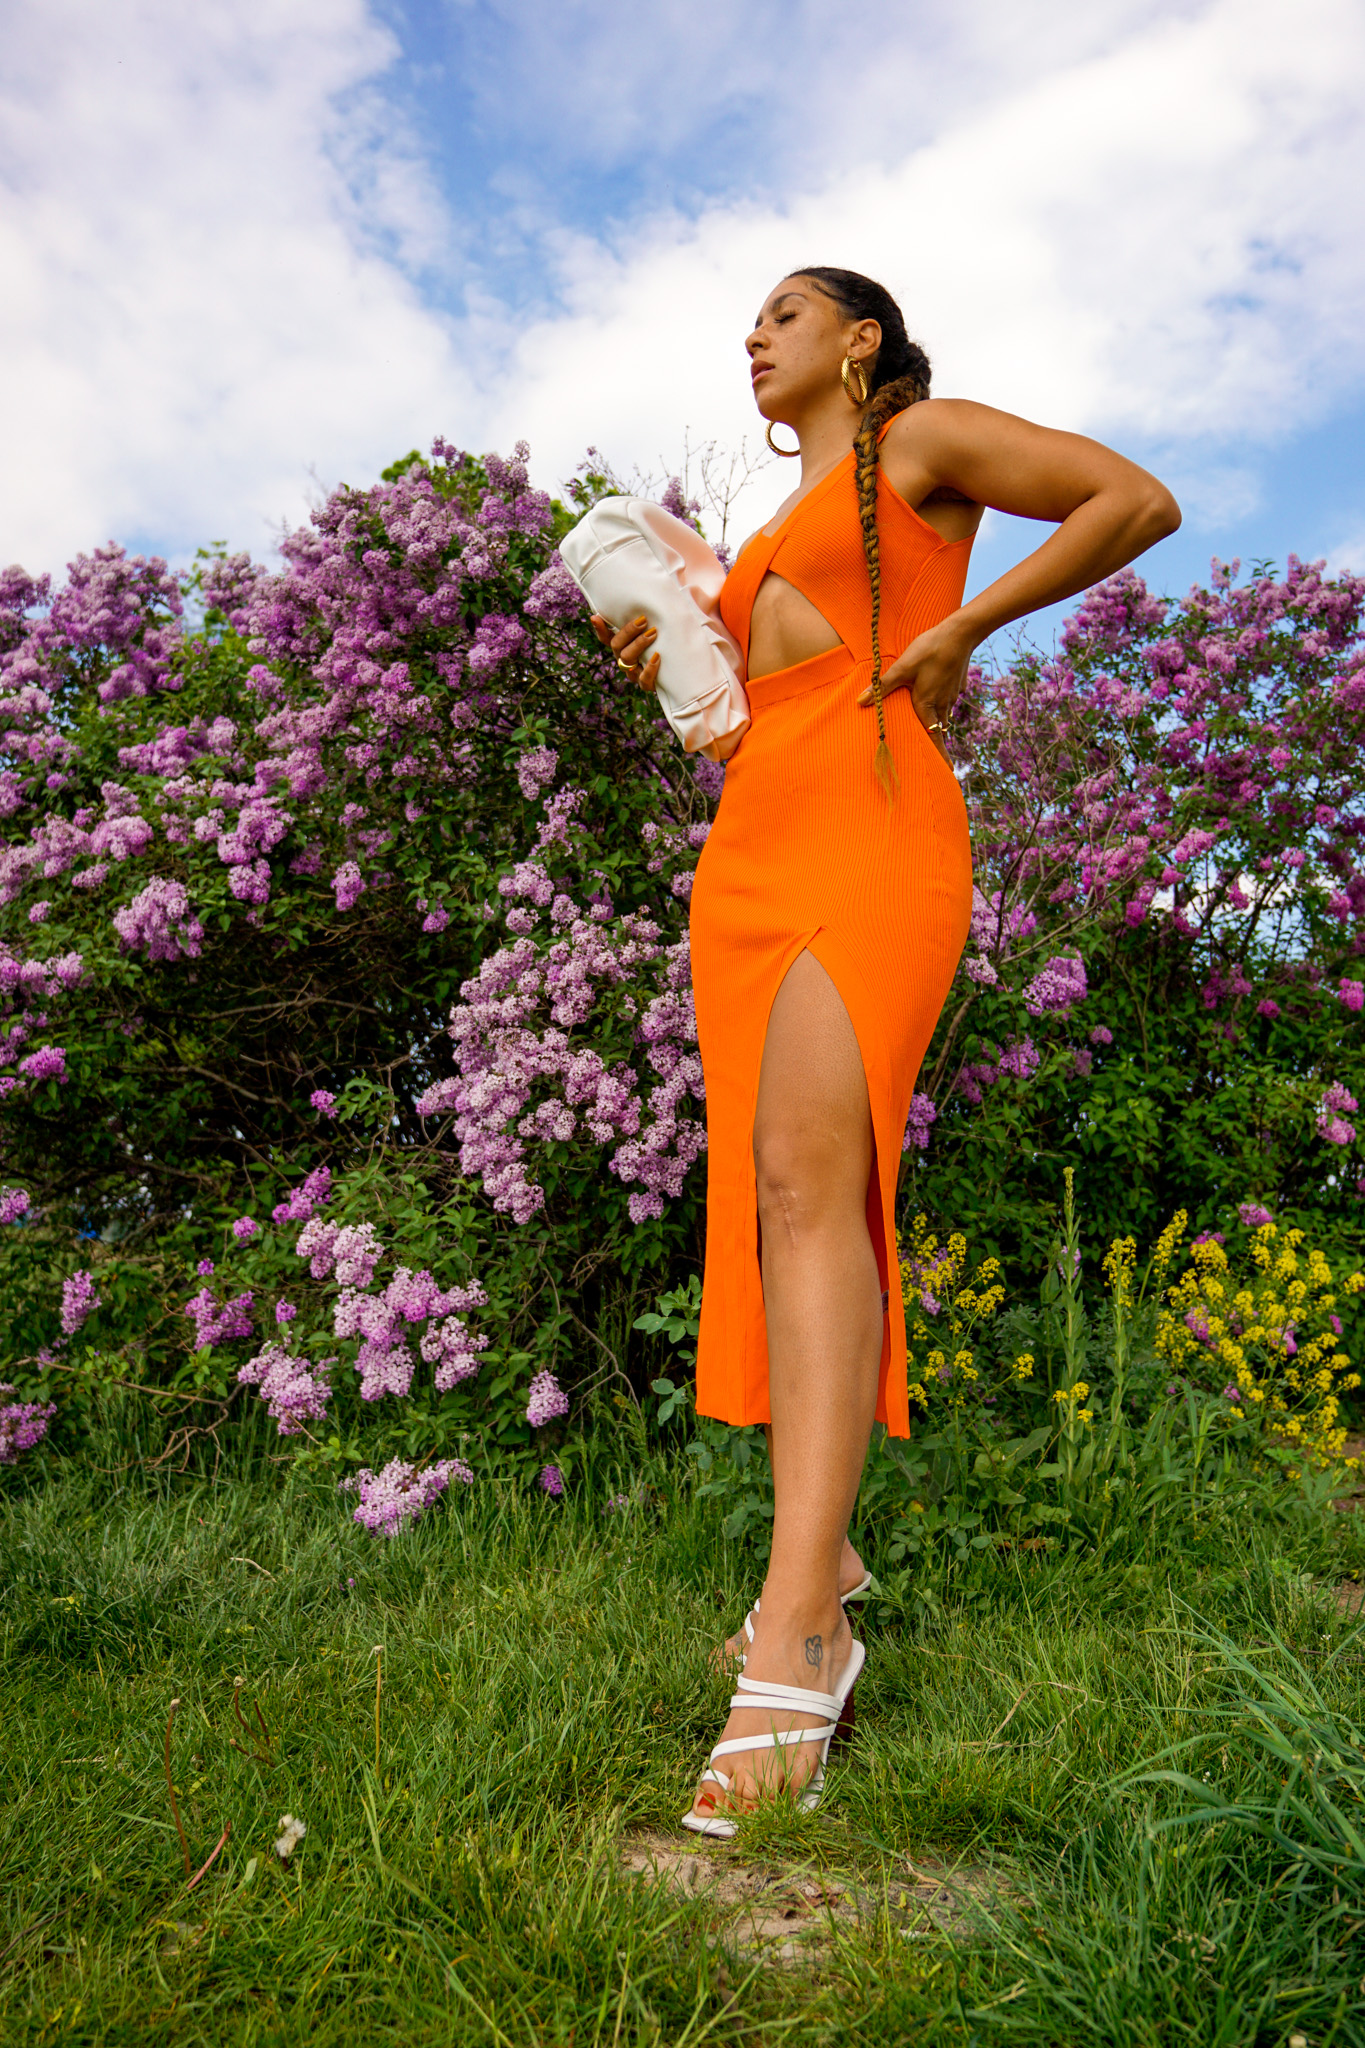 colorful summer dresses for pear shaped women, orange dress summer outfit idea, zara dress street style outfit, summer outfit black girl